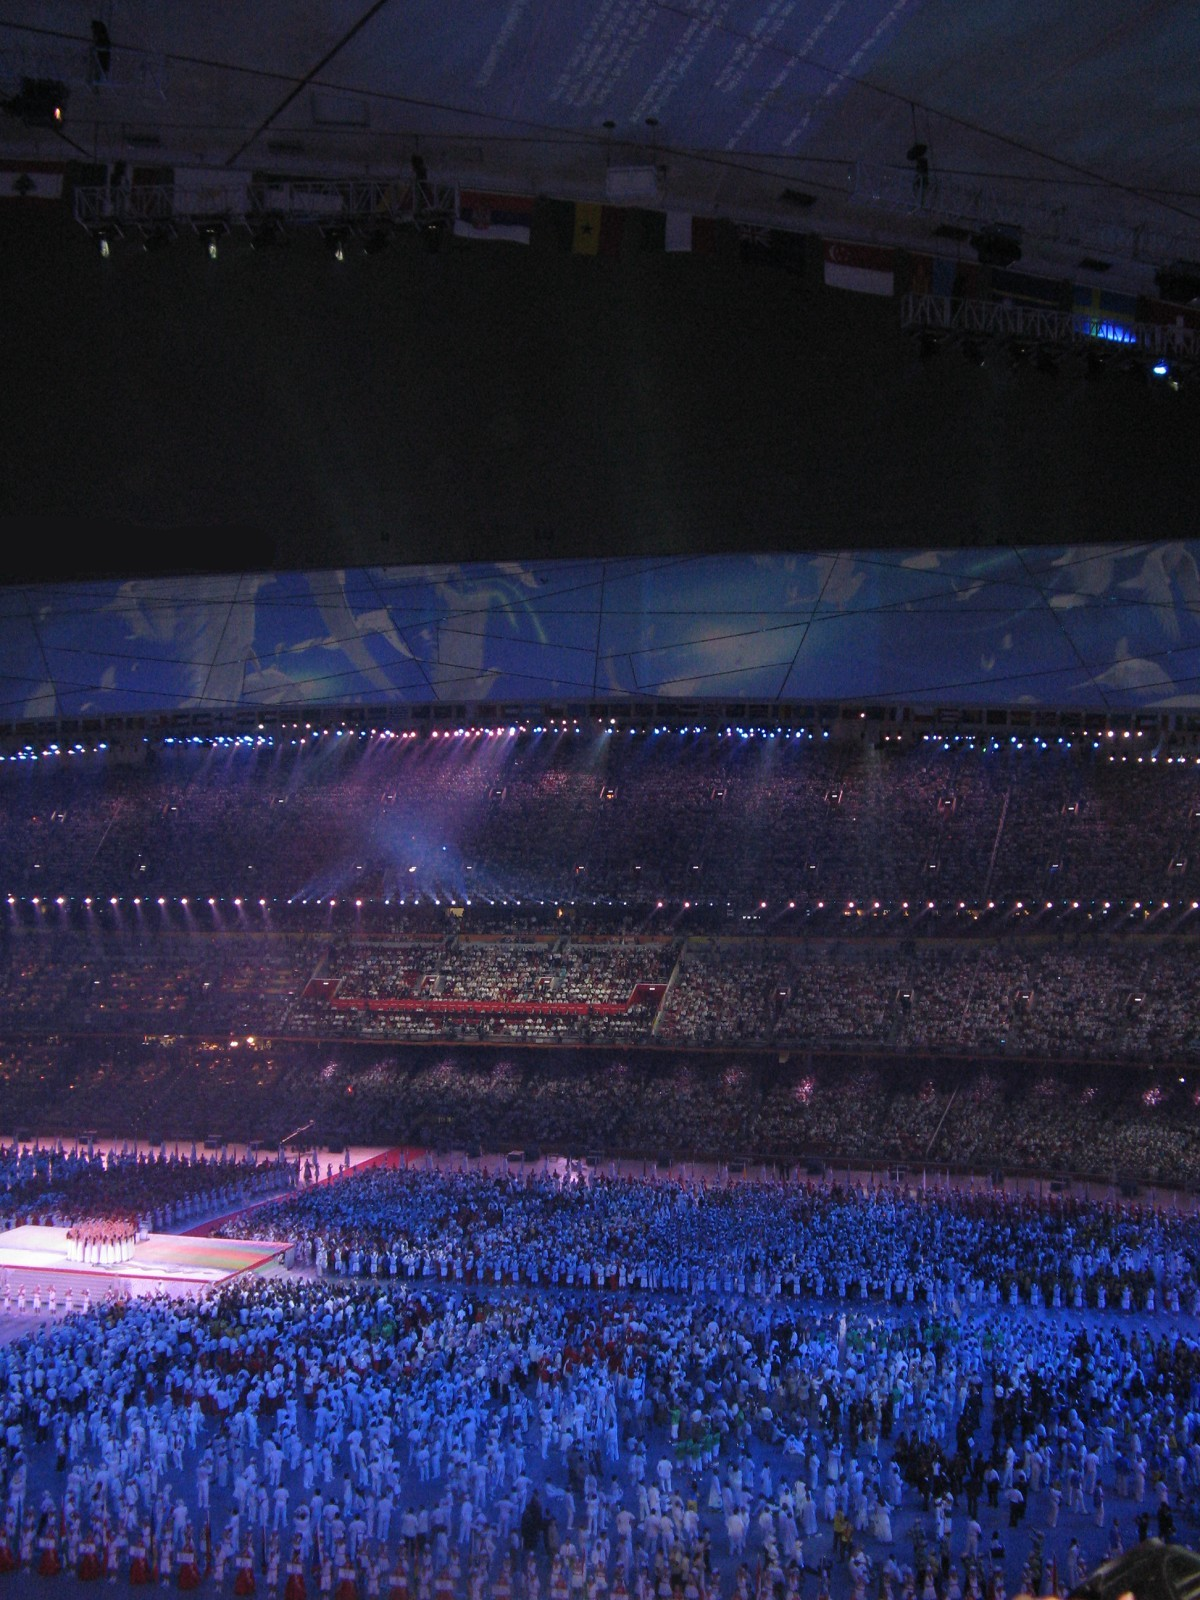 The Blue Screen of Death Follows Windows to the 2008 Olympics